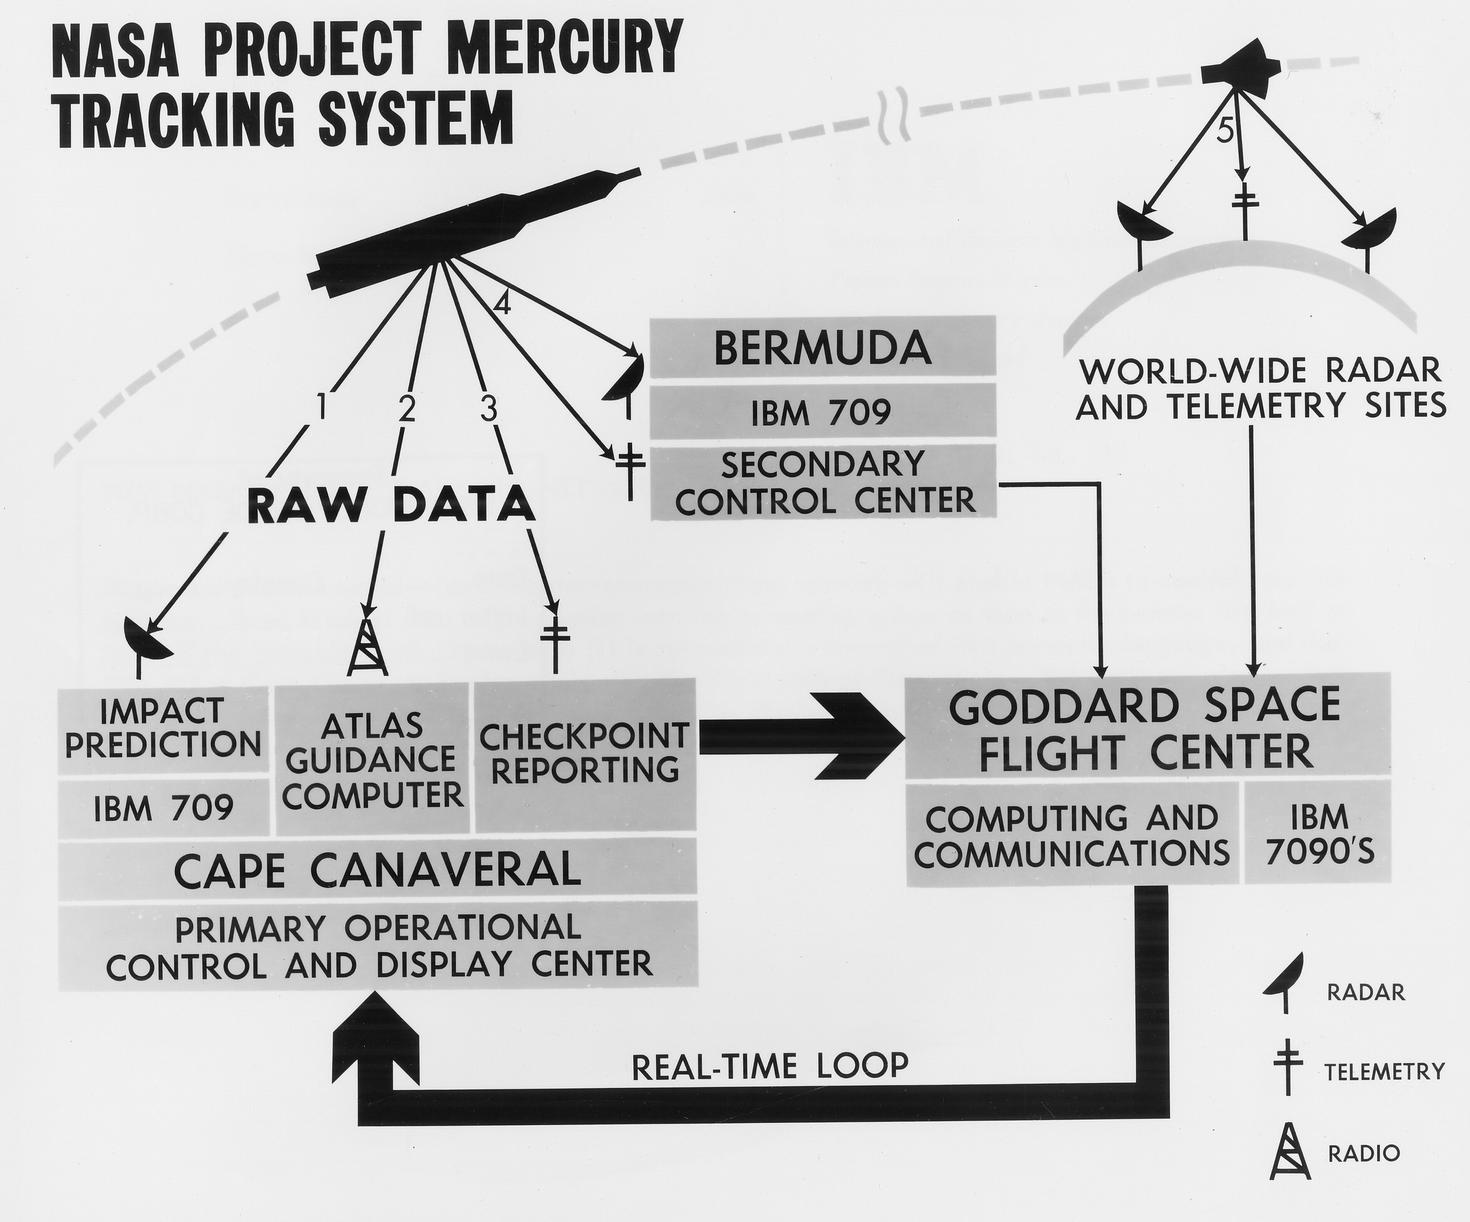 NASA Project Mercury Tracking System 1961